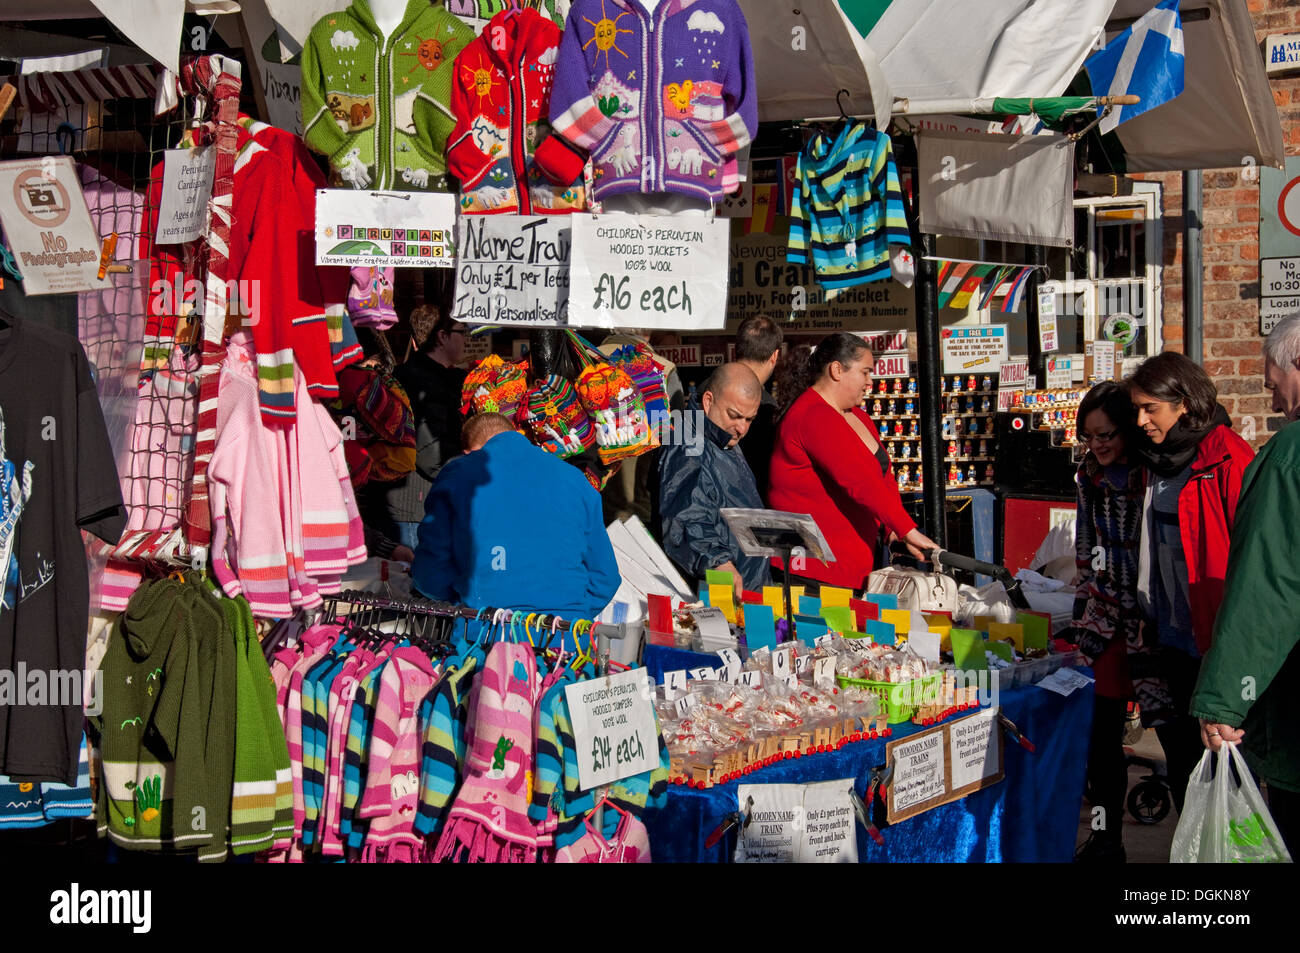 a609e98b00fa Childrens clothing for sale on market stall Stock Photo  61899403 ...